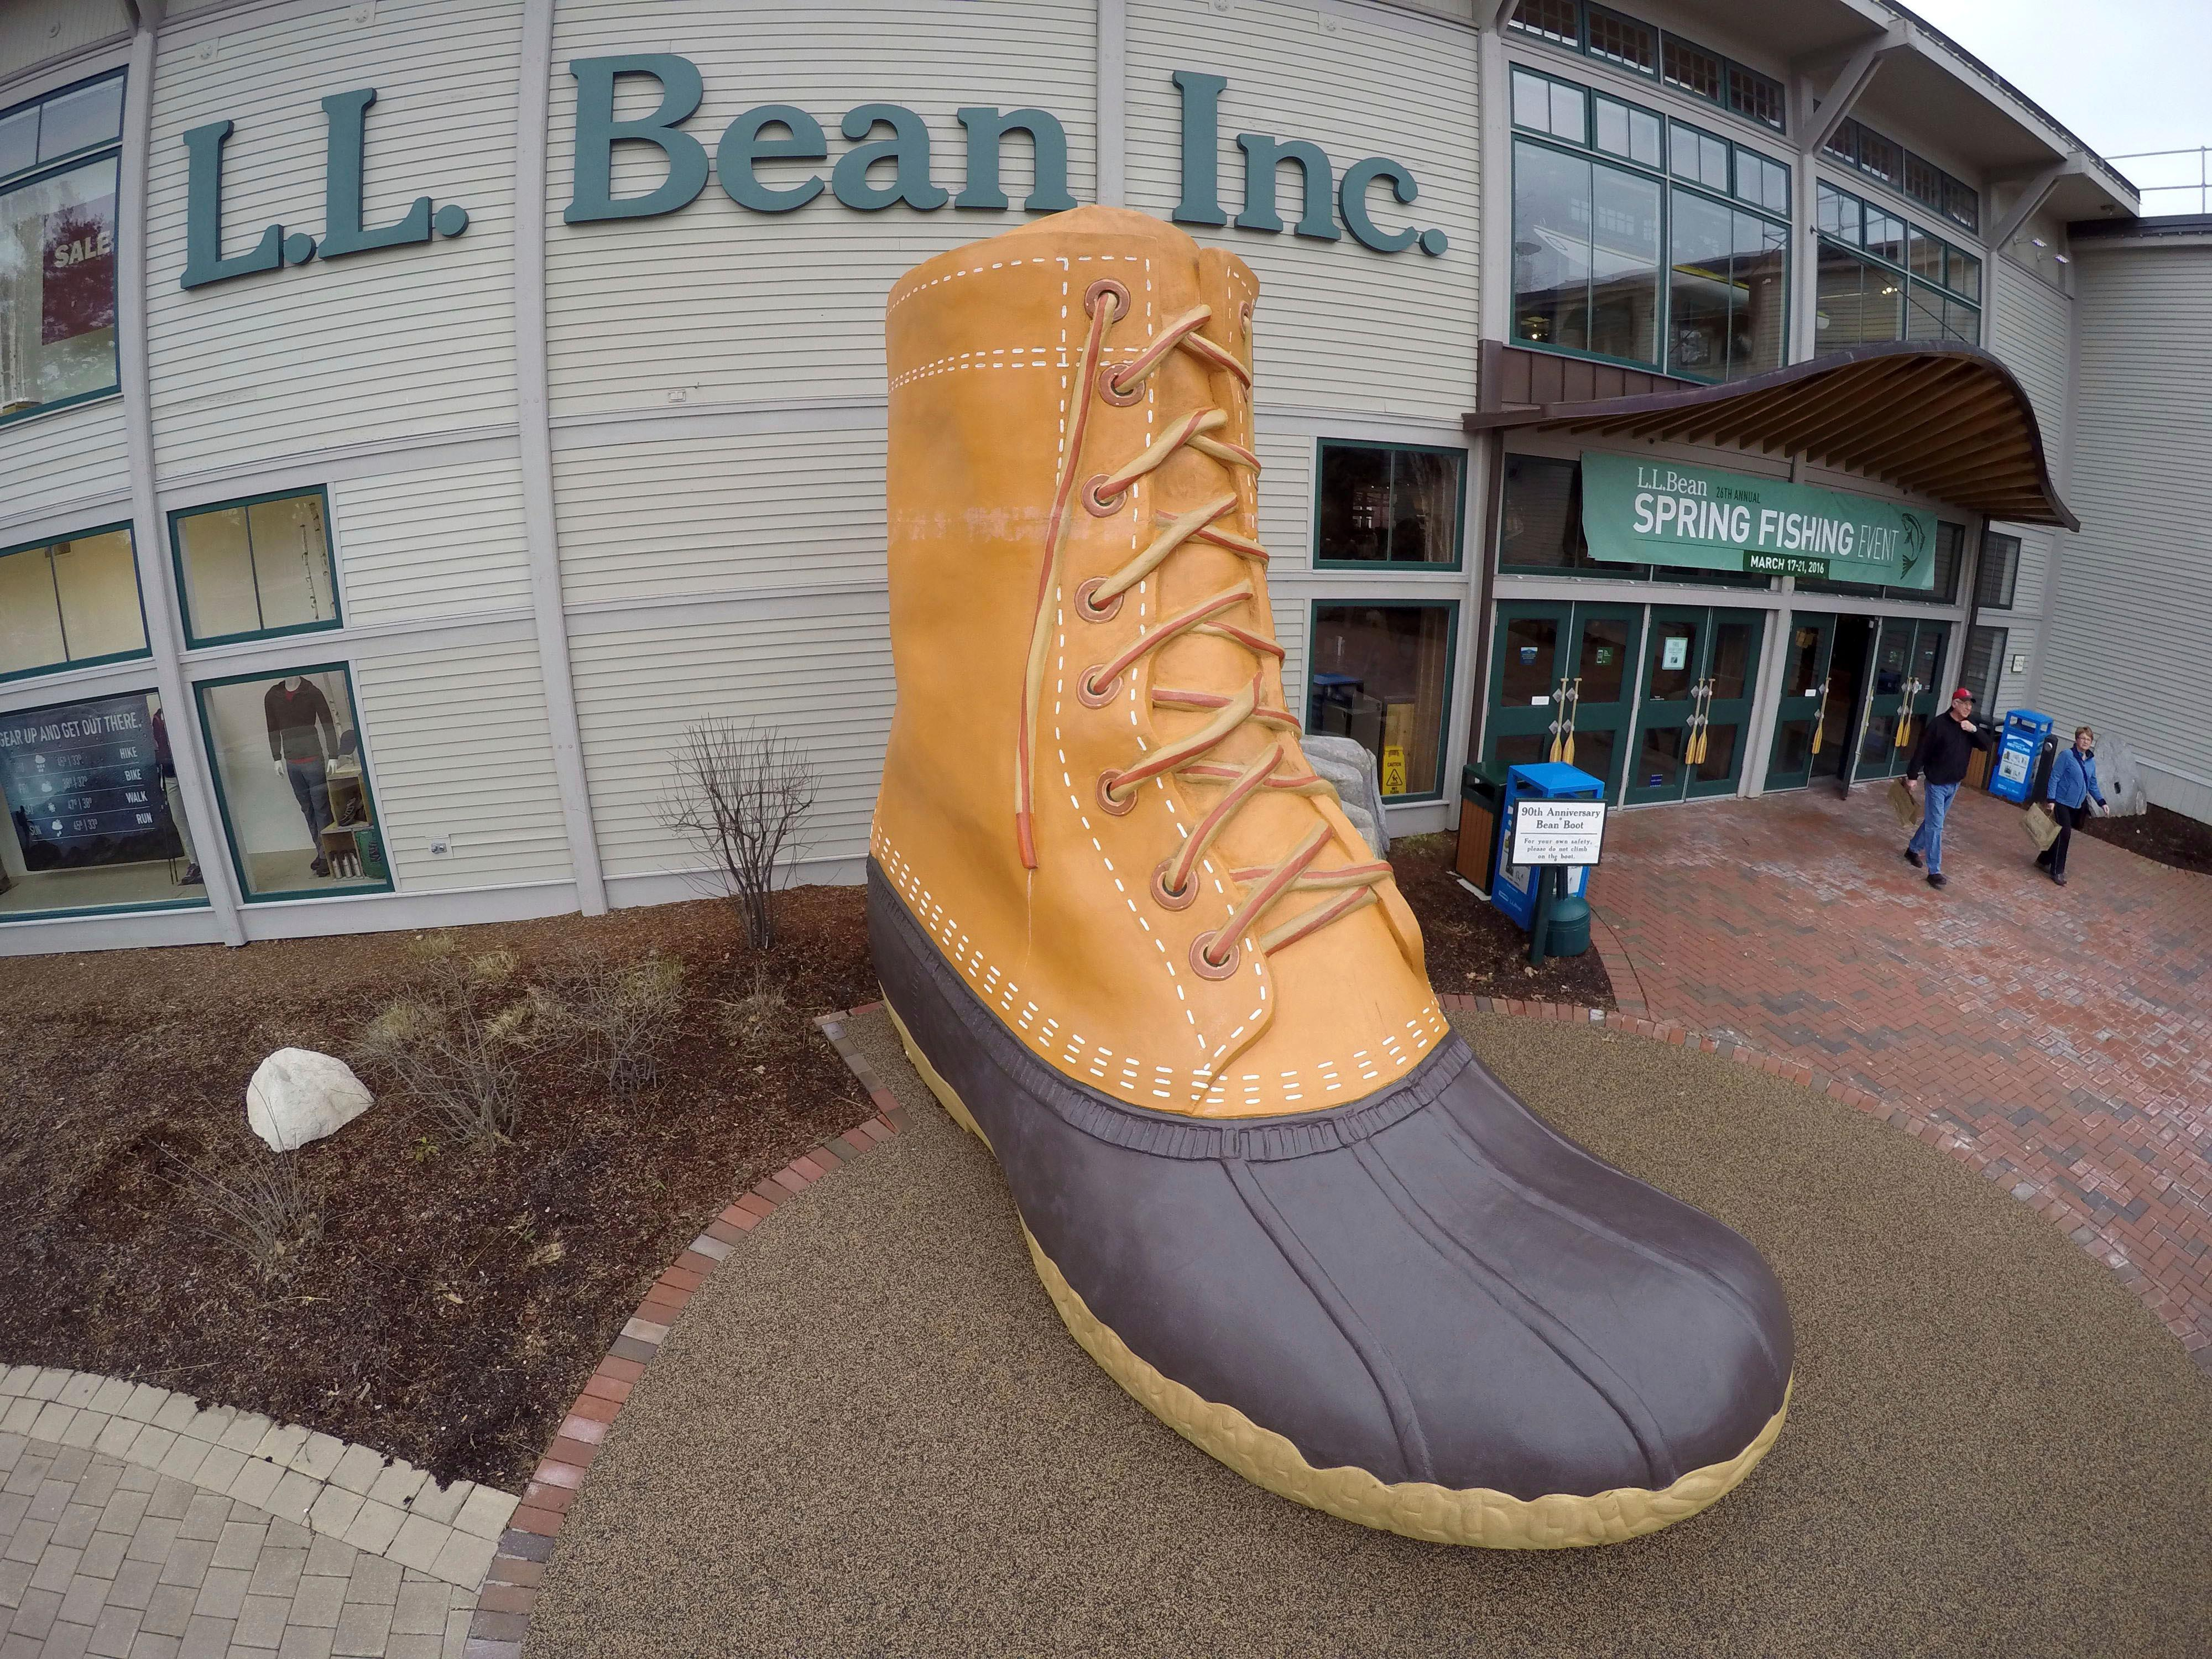 FILE - In this March 16, 2016, file photo, shoppers exit the L.L. Bean retail store in Freeport, Maine.   L.L. Bean is tightening its generous return policy by imposing a one-year limit on most returns to reduce abuse and fraud. Executives say returns of severely worn items have doubled over five years. Under the new policy announced Friday, Feb. 9, 2018, the company will accept returns for one year with a proof of purchase and will continue to replace products for manufacturing defects beyond that. (AP Photo/Robert F. Bukaty, File)